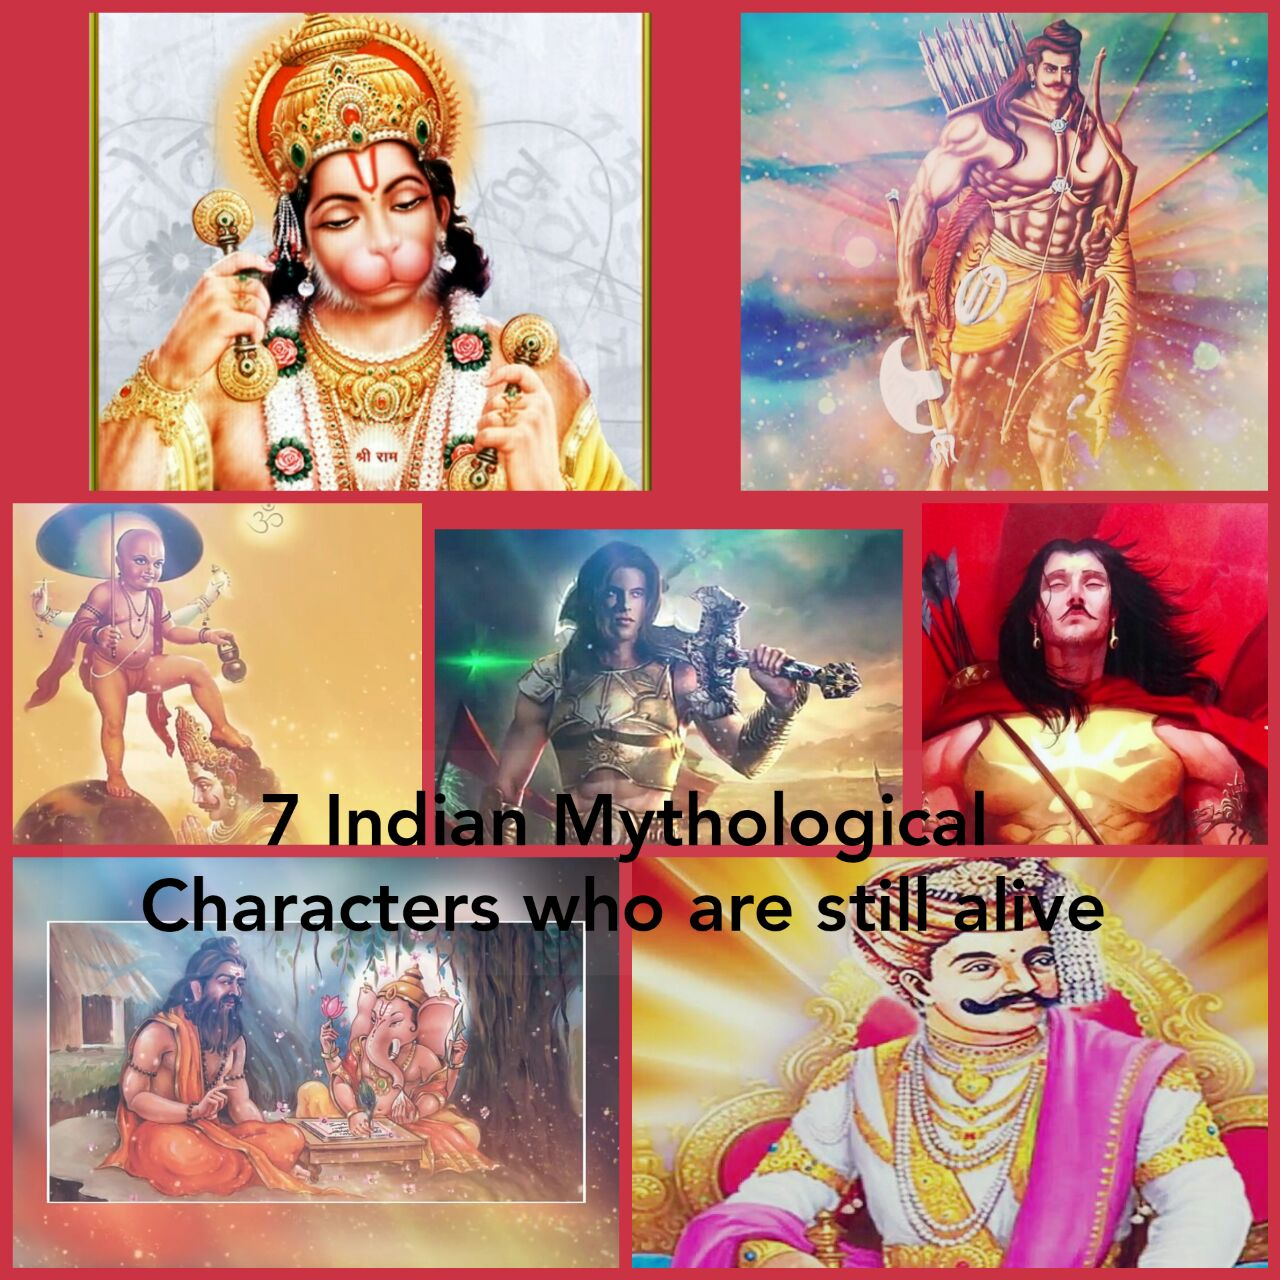 7 Indian Mythological Characters who are still alive -Immortal Soul